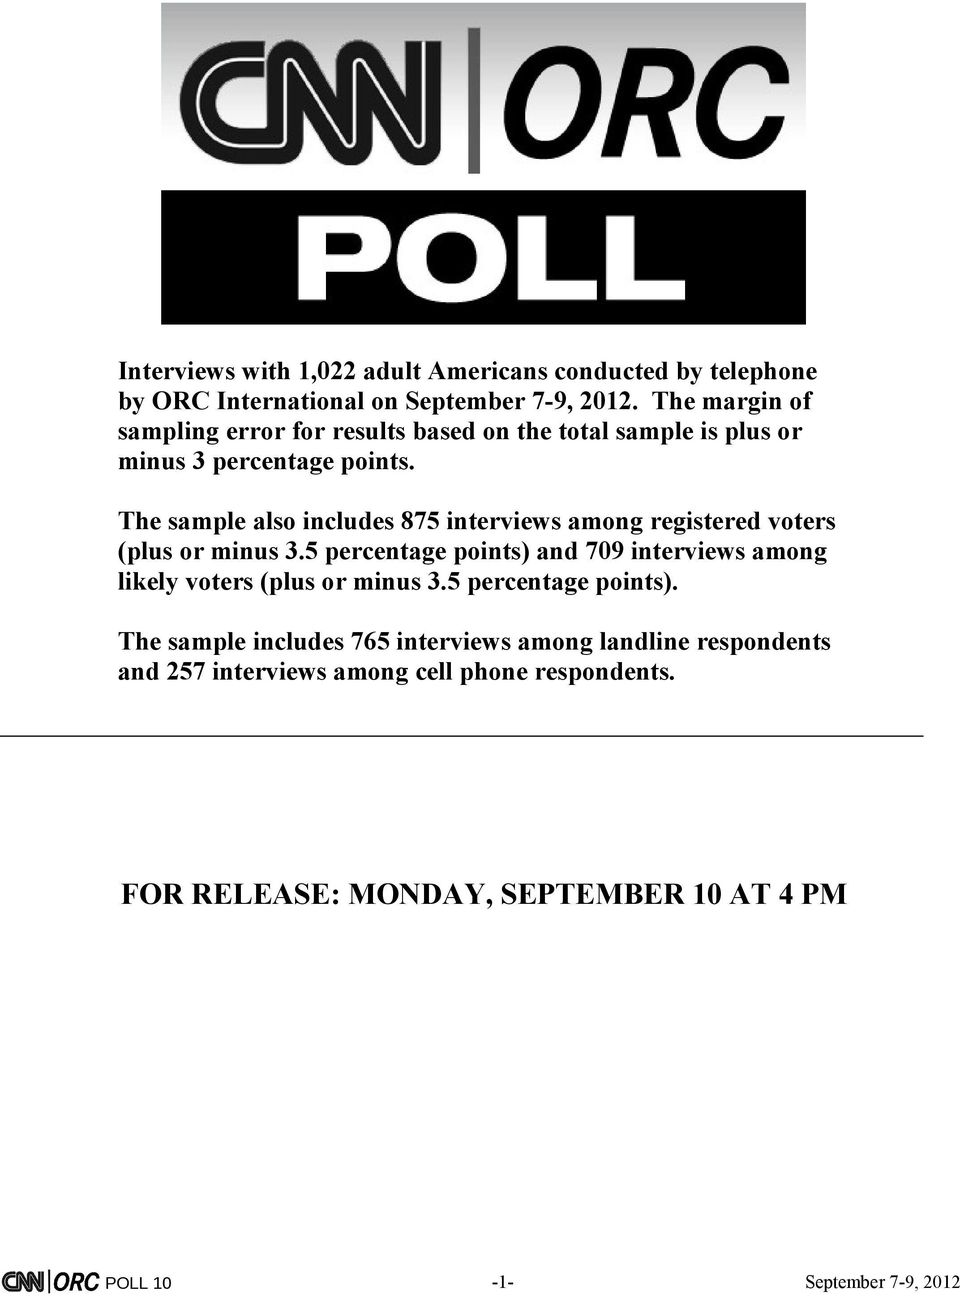 The sample also includes 875 interviews among registered voters (plus or minus 3.